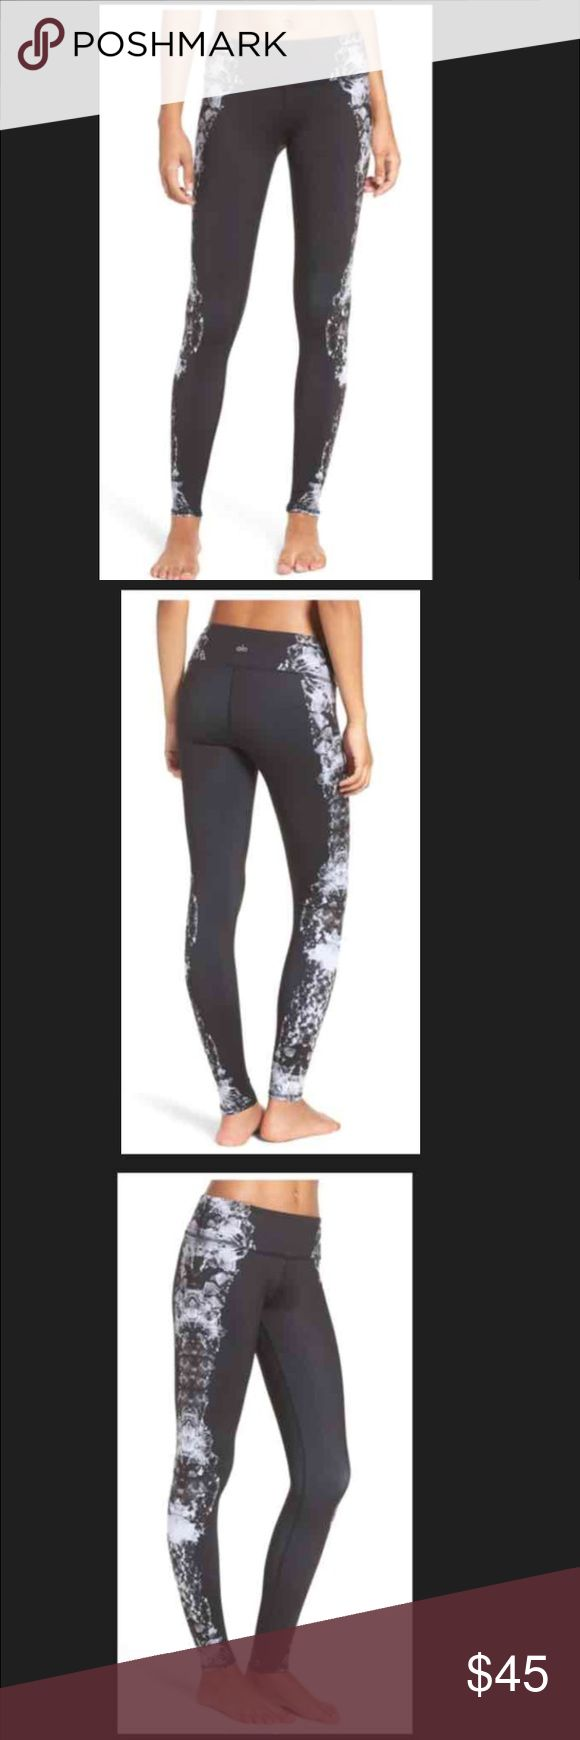 """NWT Alo Airbrush Leggings. NWT Alo Airbrush Leggings. An extra-wide waistband tops the style, providing additional support for your core.  29"""" inseam; 8"""" leg opening; 8"""" front rise; 11 1/2"""" back rise (size Medium). Smooth flatlock seaming won't rub or irritate. Moisture-wicking fabric dries quickly to keep you cool and comfortable. Gusset inset enhances comfort and breathability. Antimicrobial fabric inhibits the growth of odor-causing germs. Polyester/spandex or nylon/spandex. Hand wash…"""